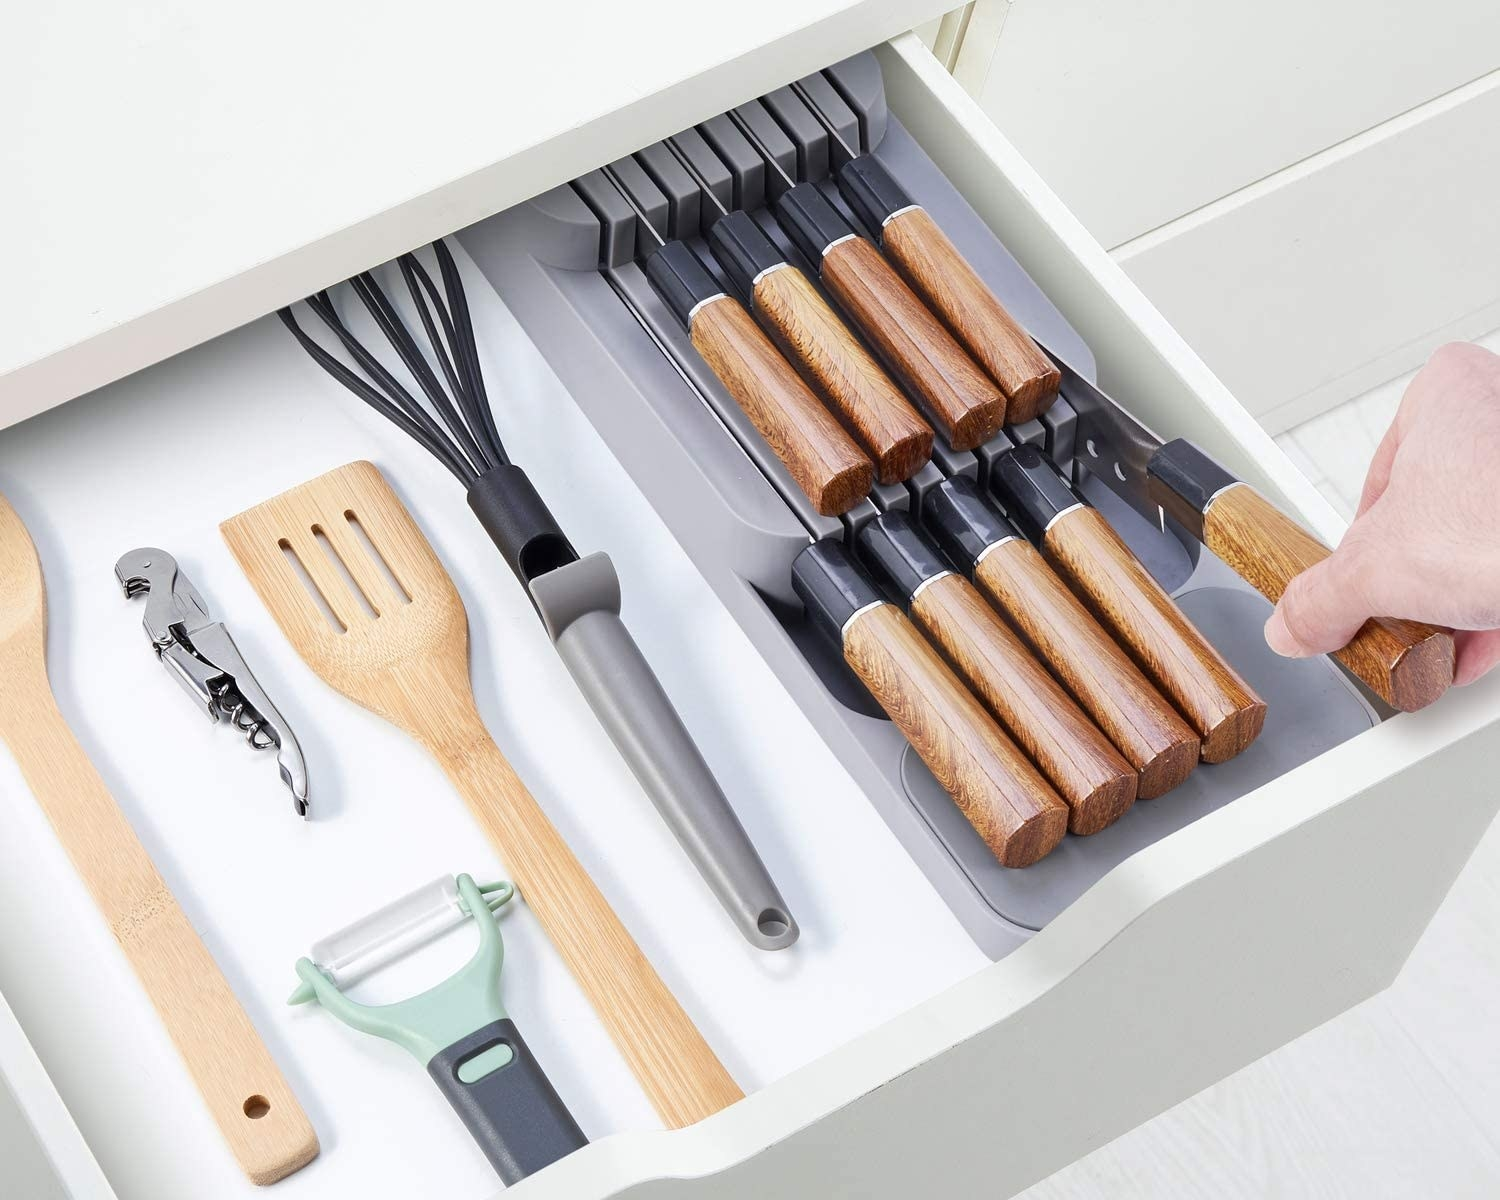 A kitchen drawer full of utensils and the knife organizer